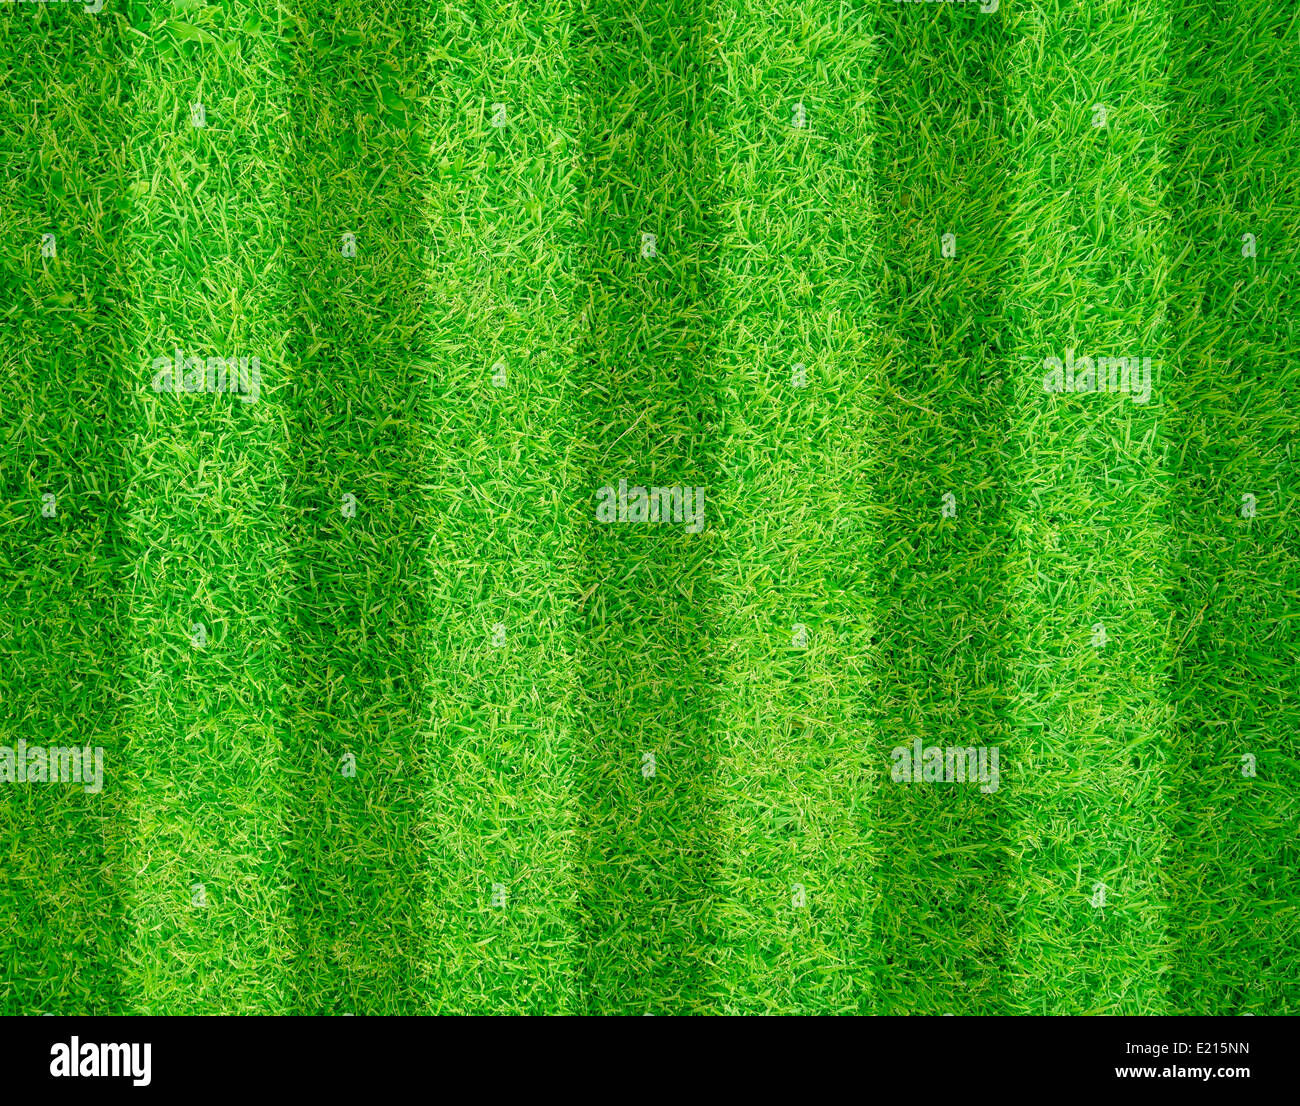 Green Grass Of A Football Soccer Field Background Stock Photo